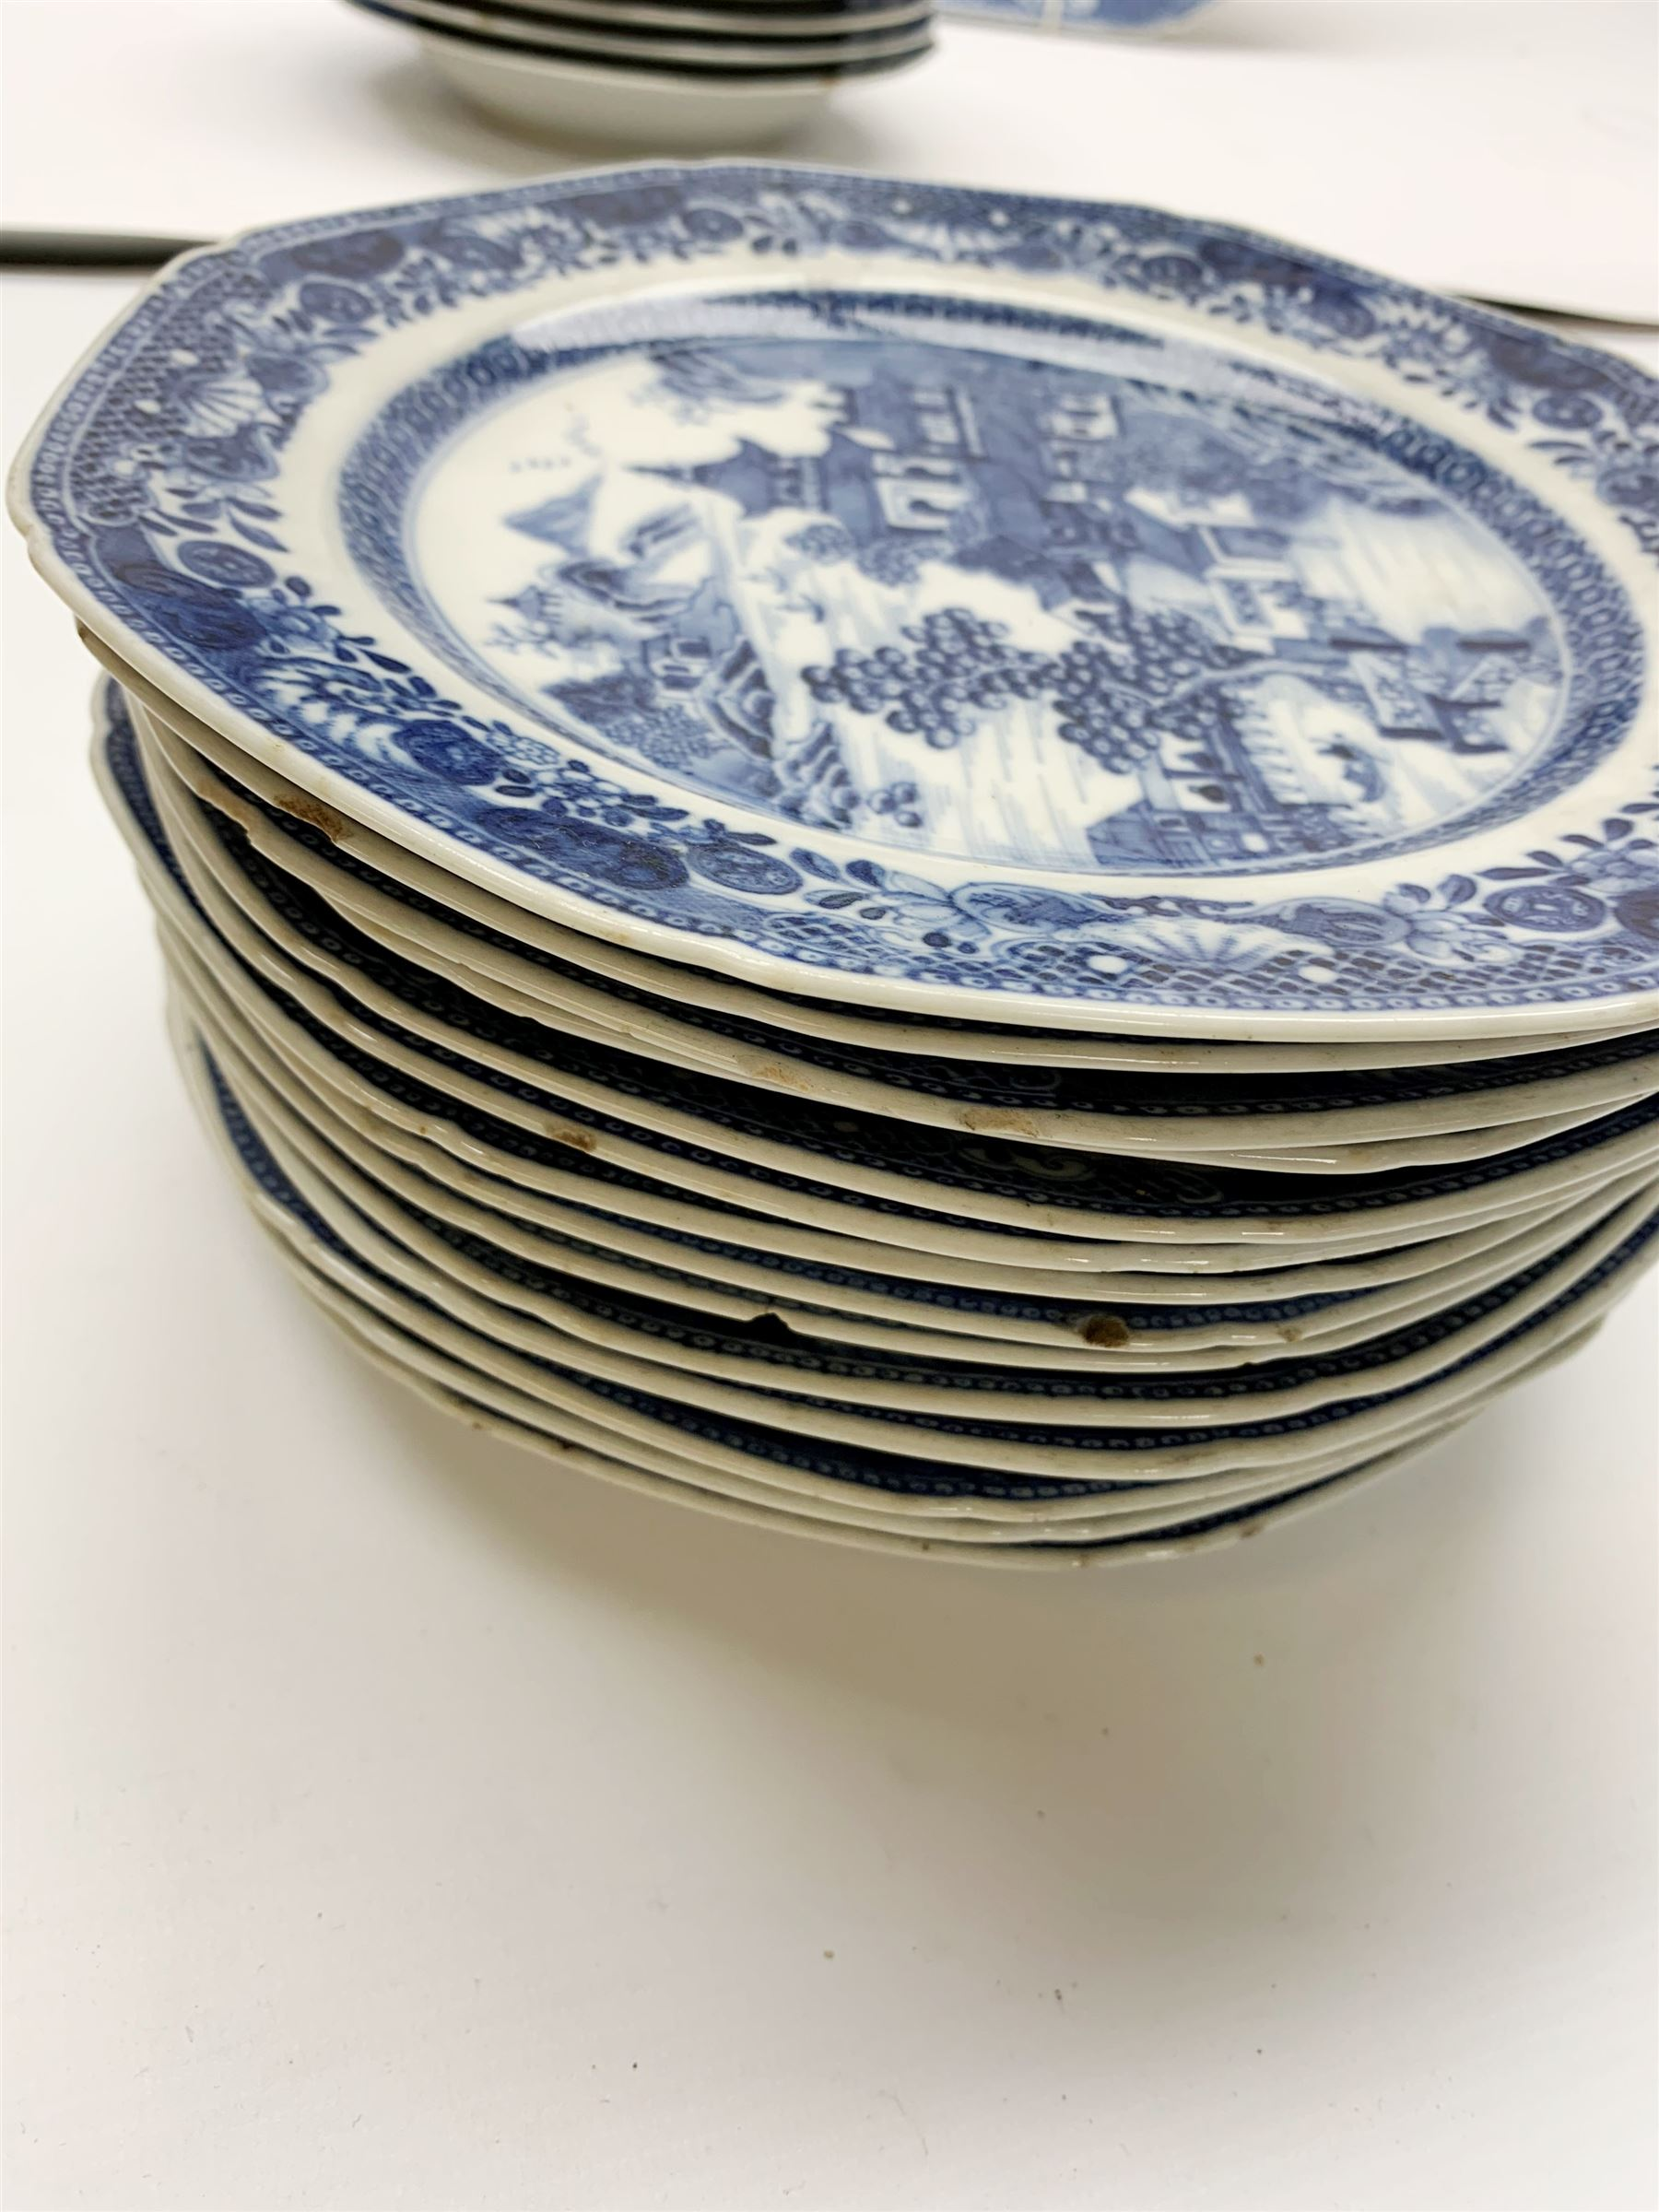 Late 18th/early 19th century Chinese export blue and white forty seven piece part dinner service - Image 6 of 20